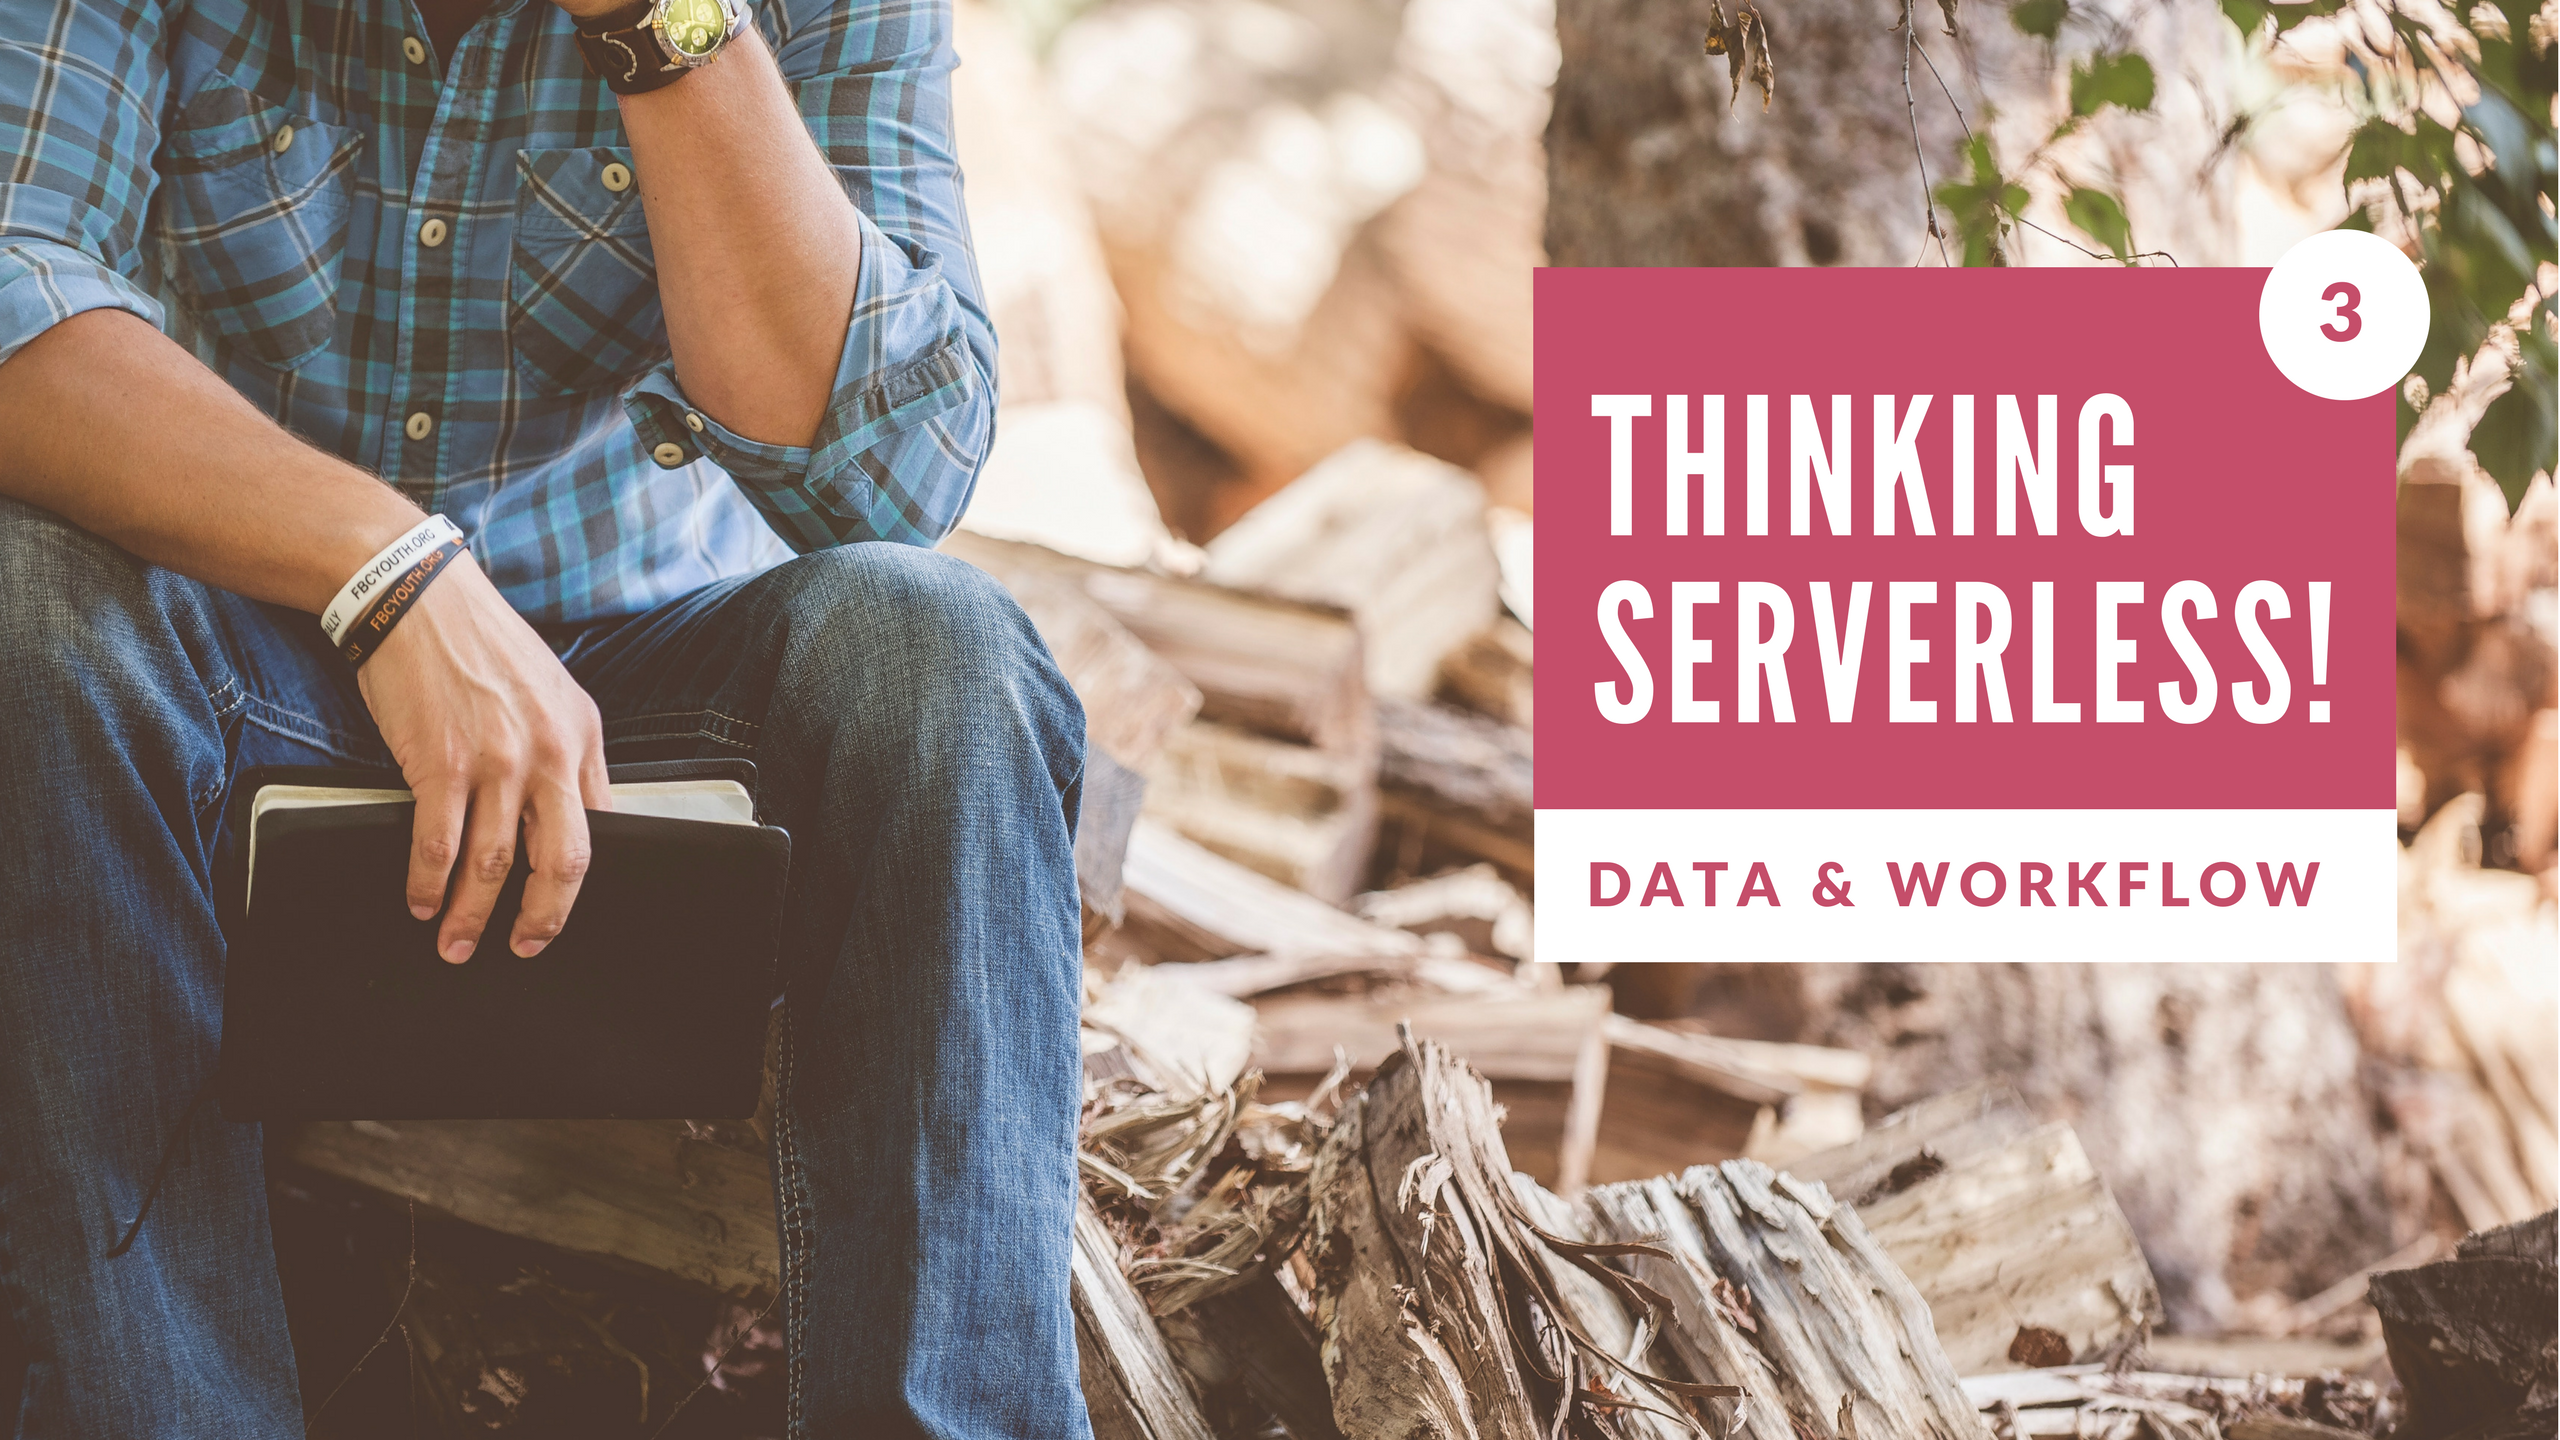 Thinking Serverless! Dealing with Data and Workflow Issues